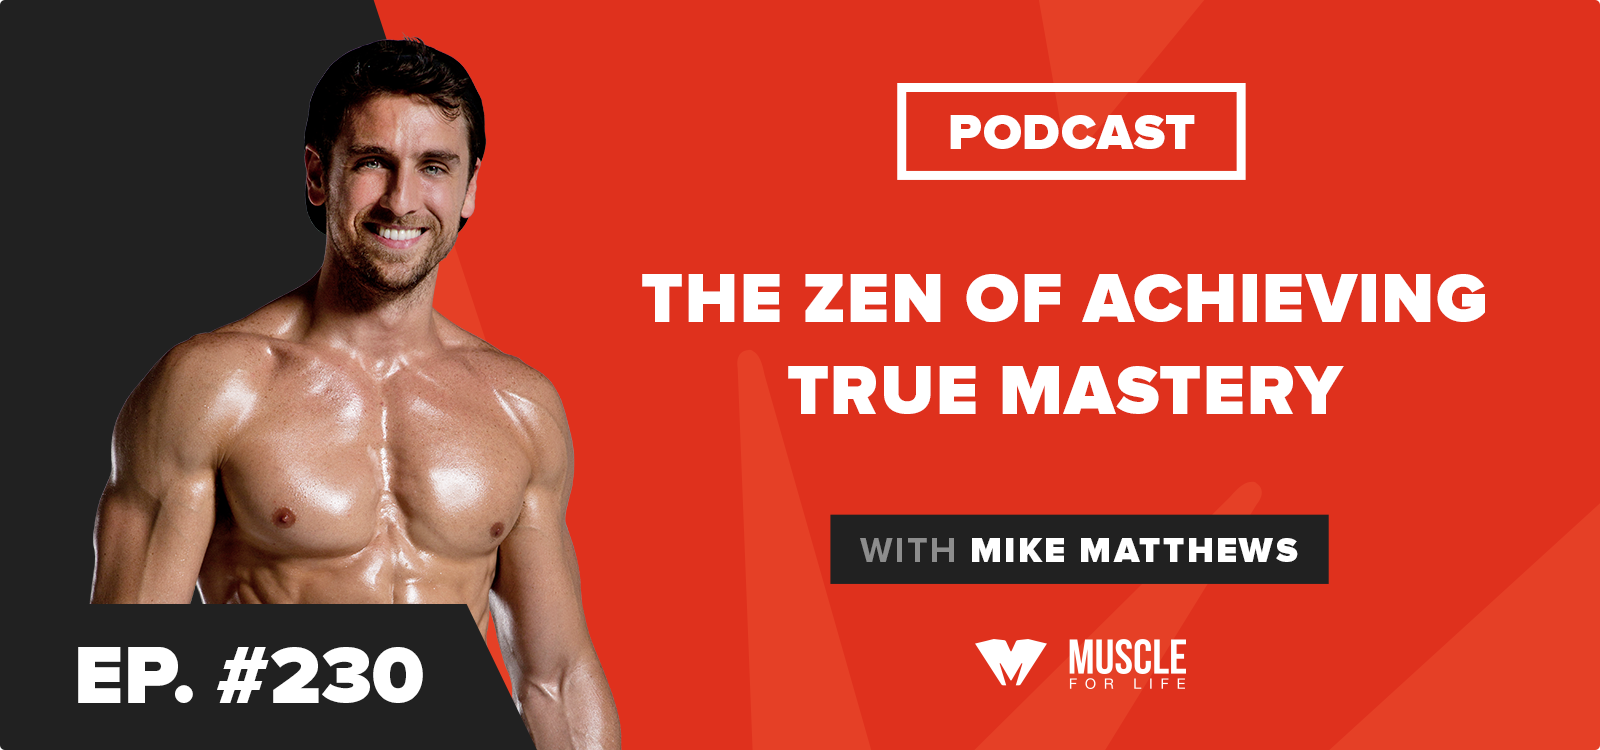 Motivation Monday: The Zen of Achieving True Mastery